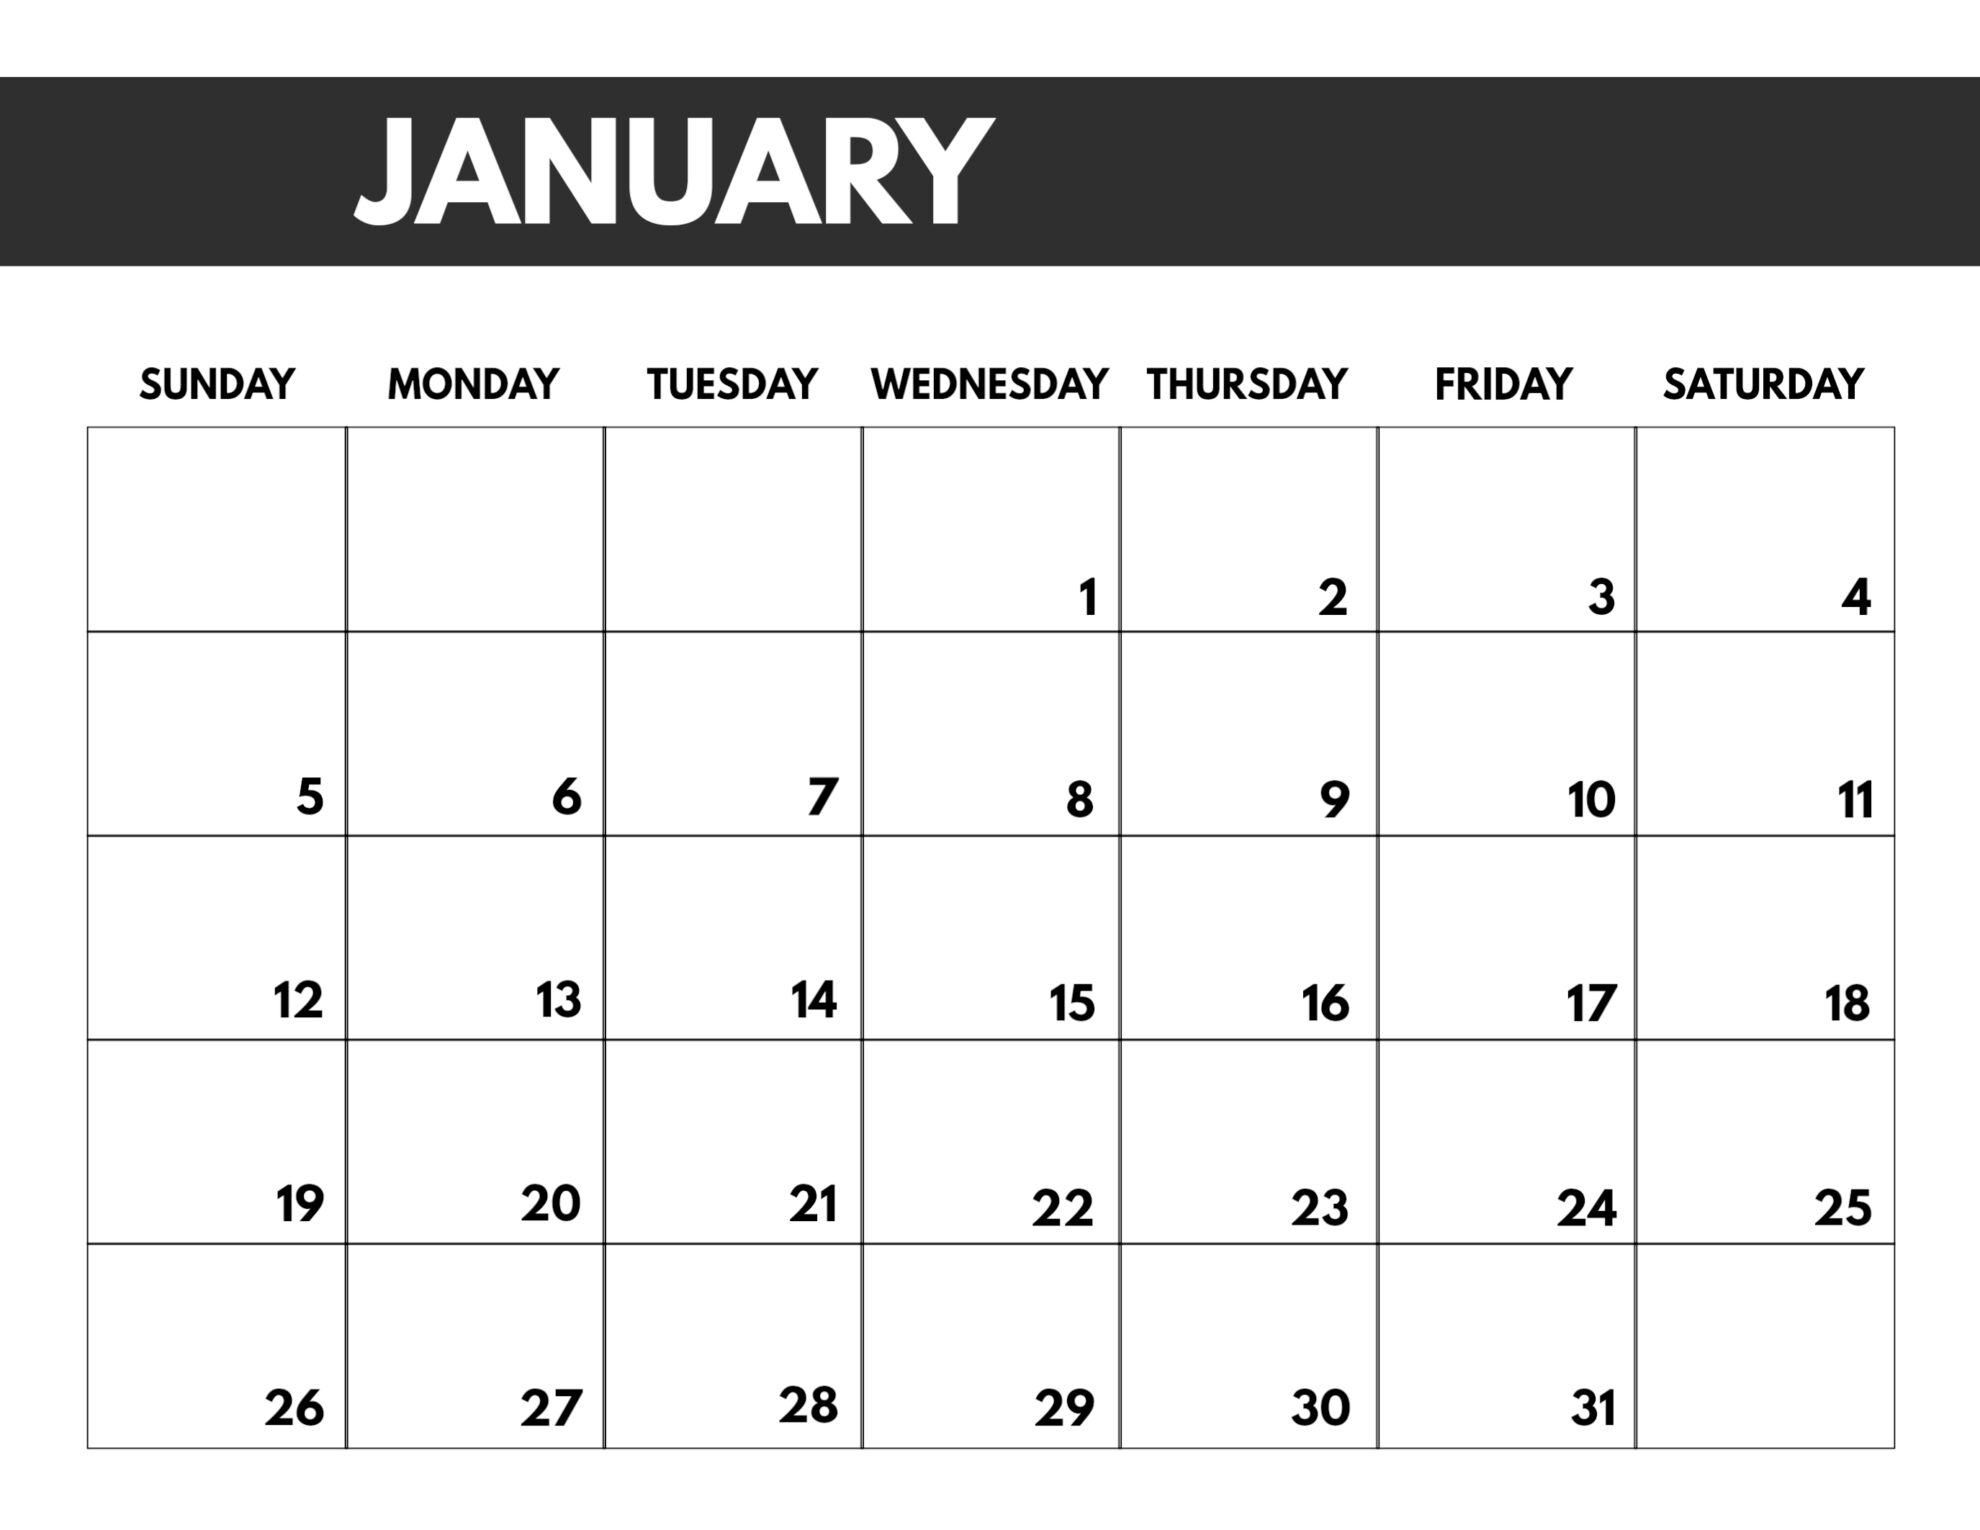 Monthly Calendars For Printing On 8.5 X 11 Paper